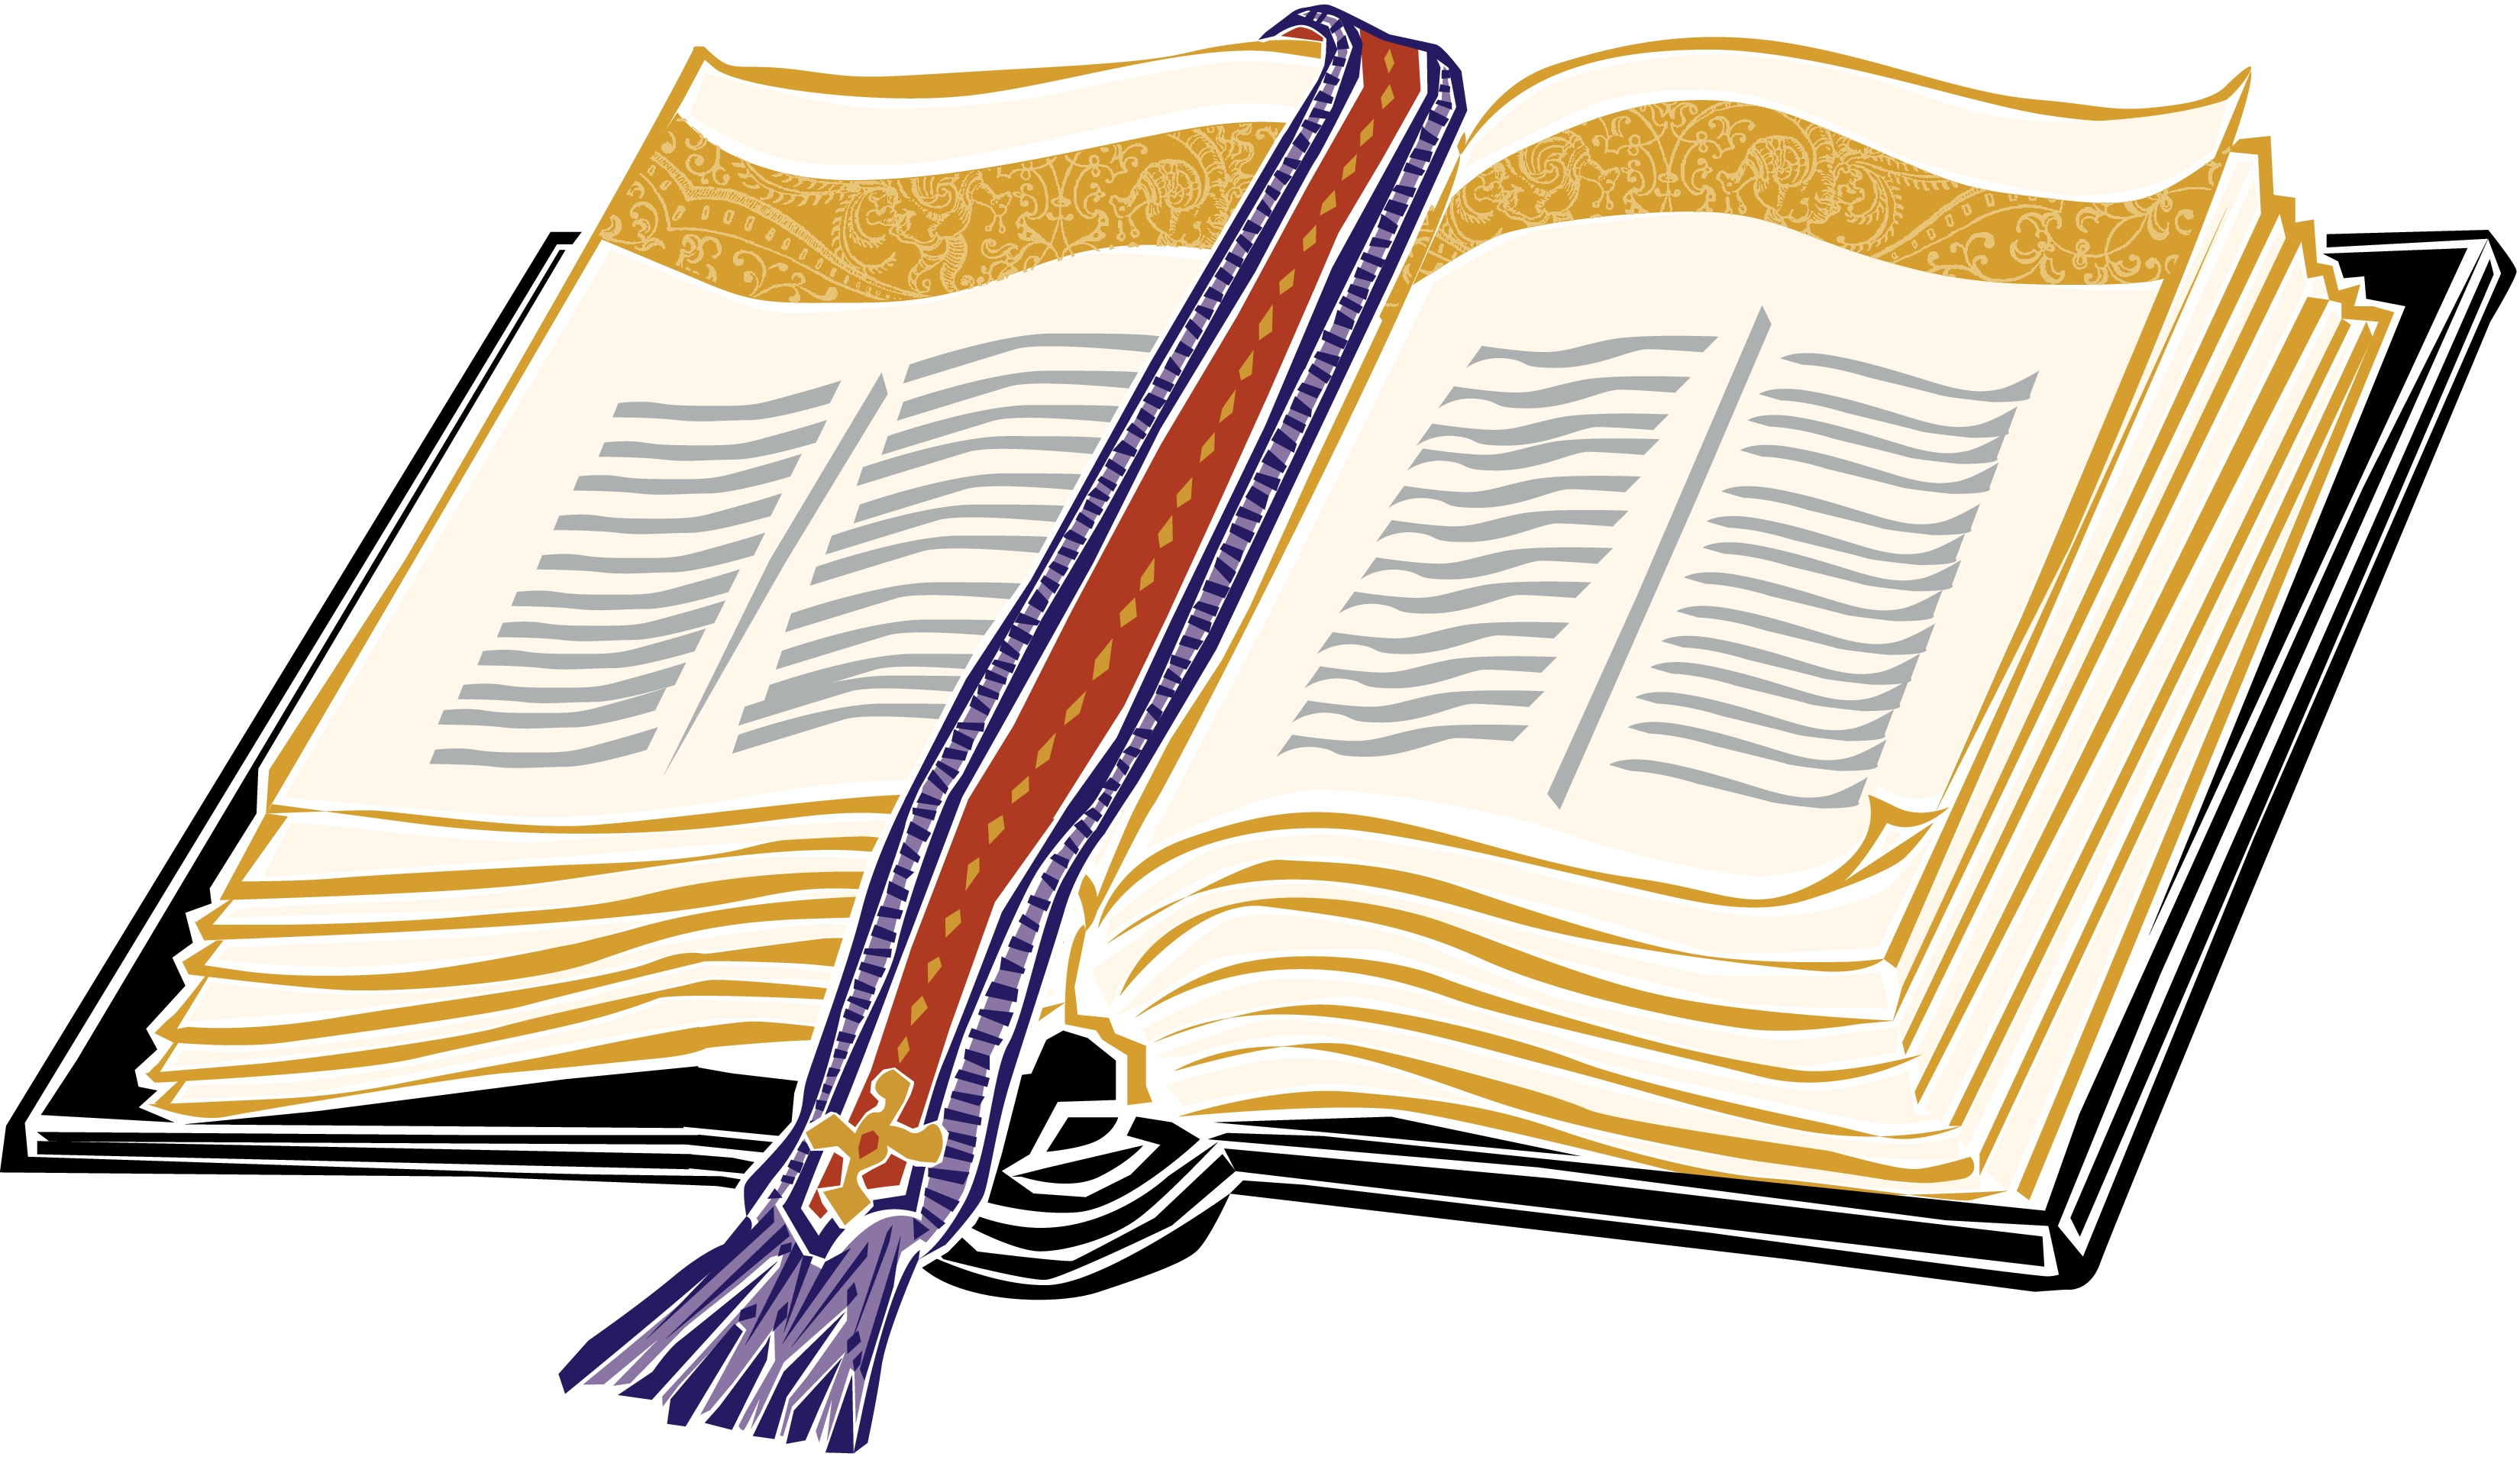 Clip Art of the Holy Bible.